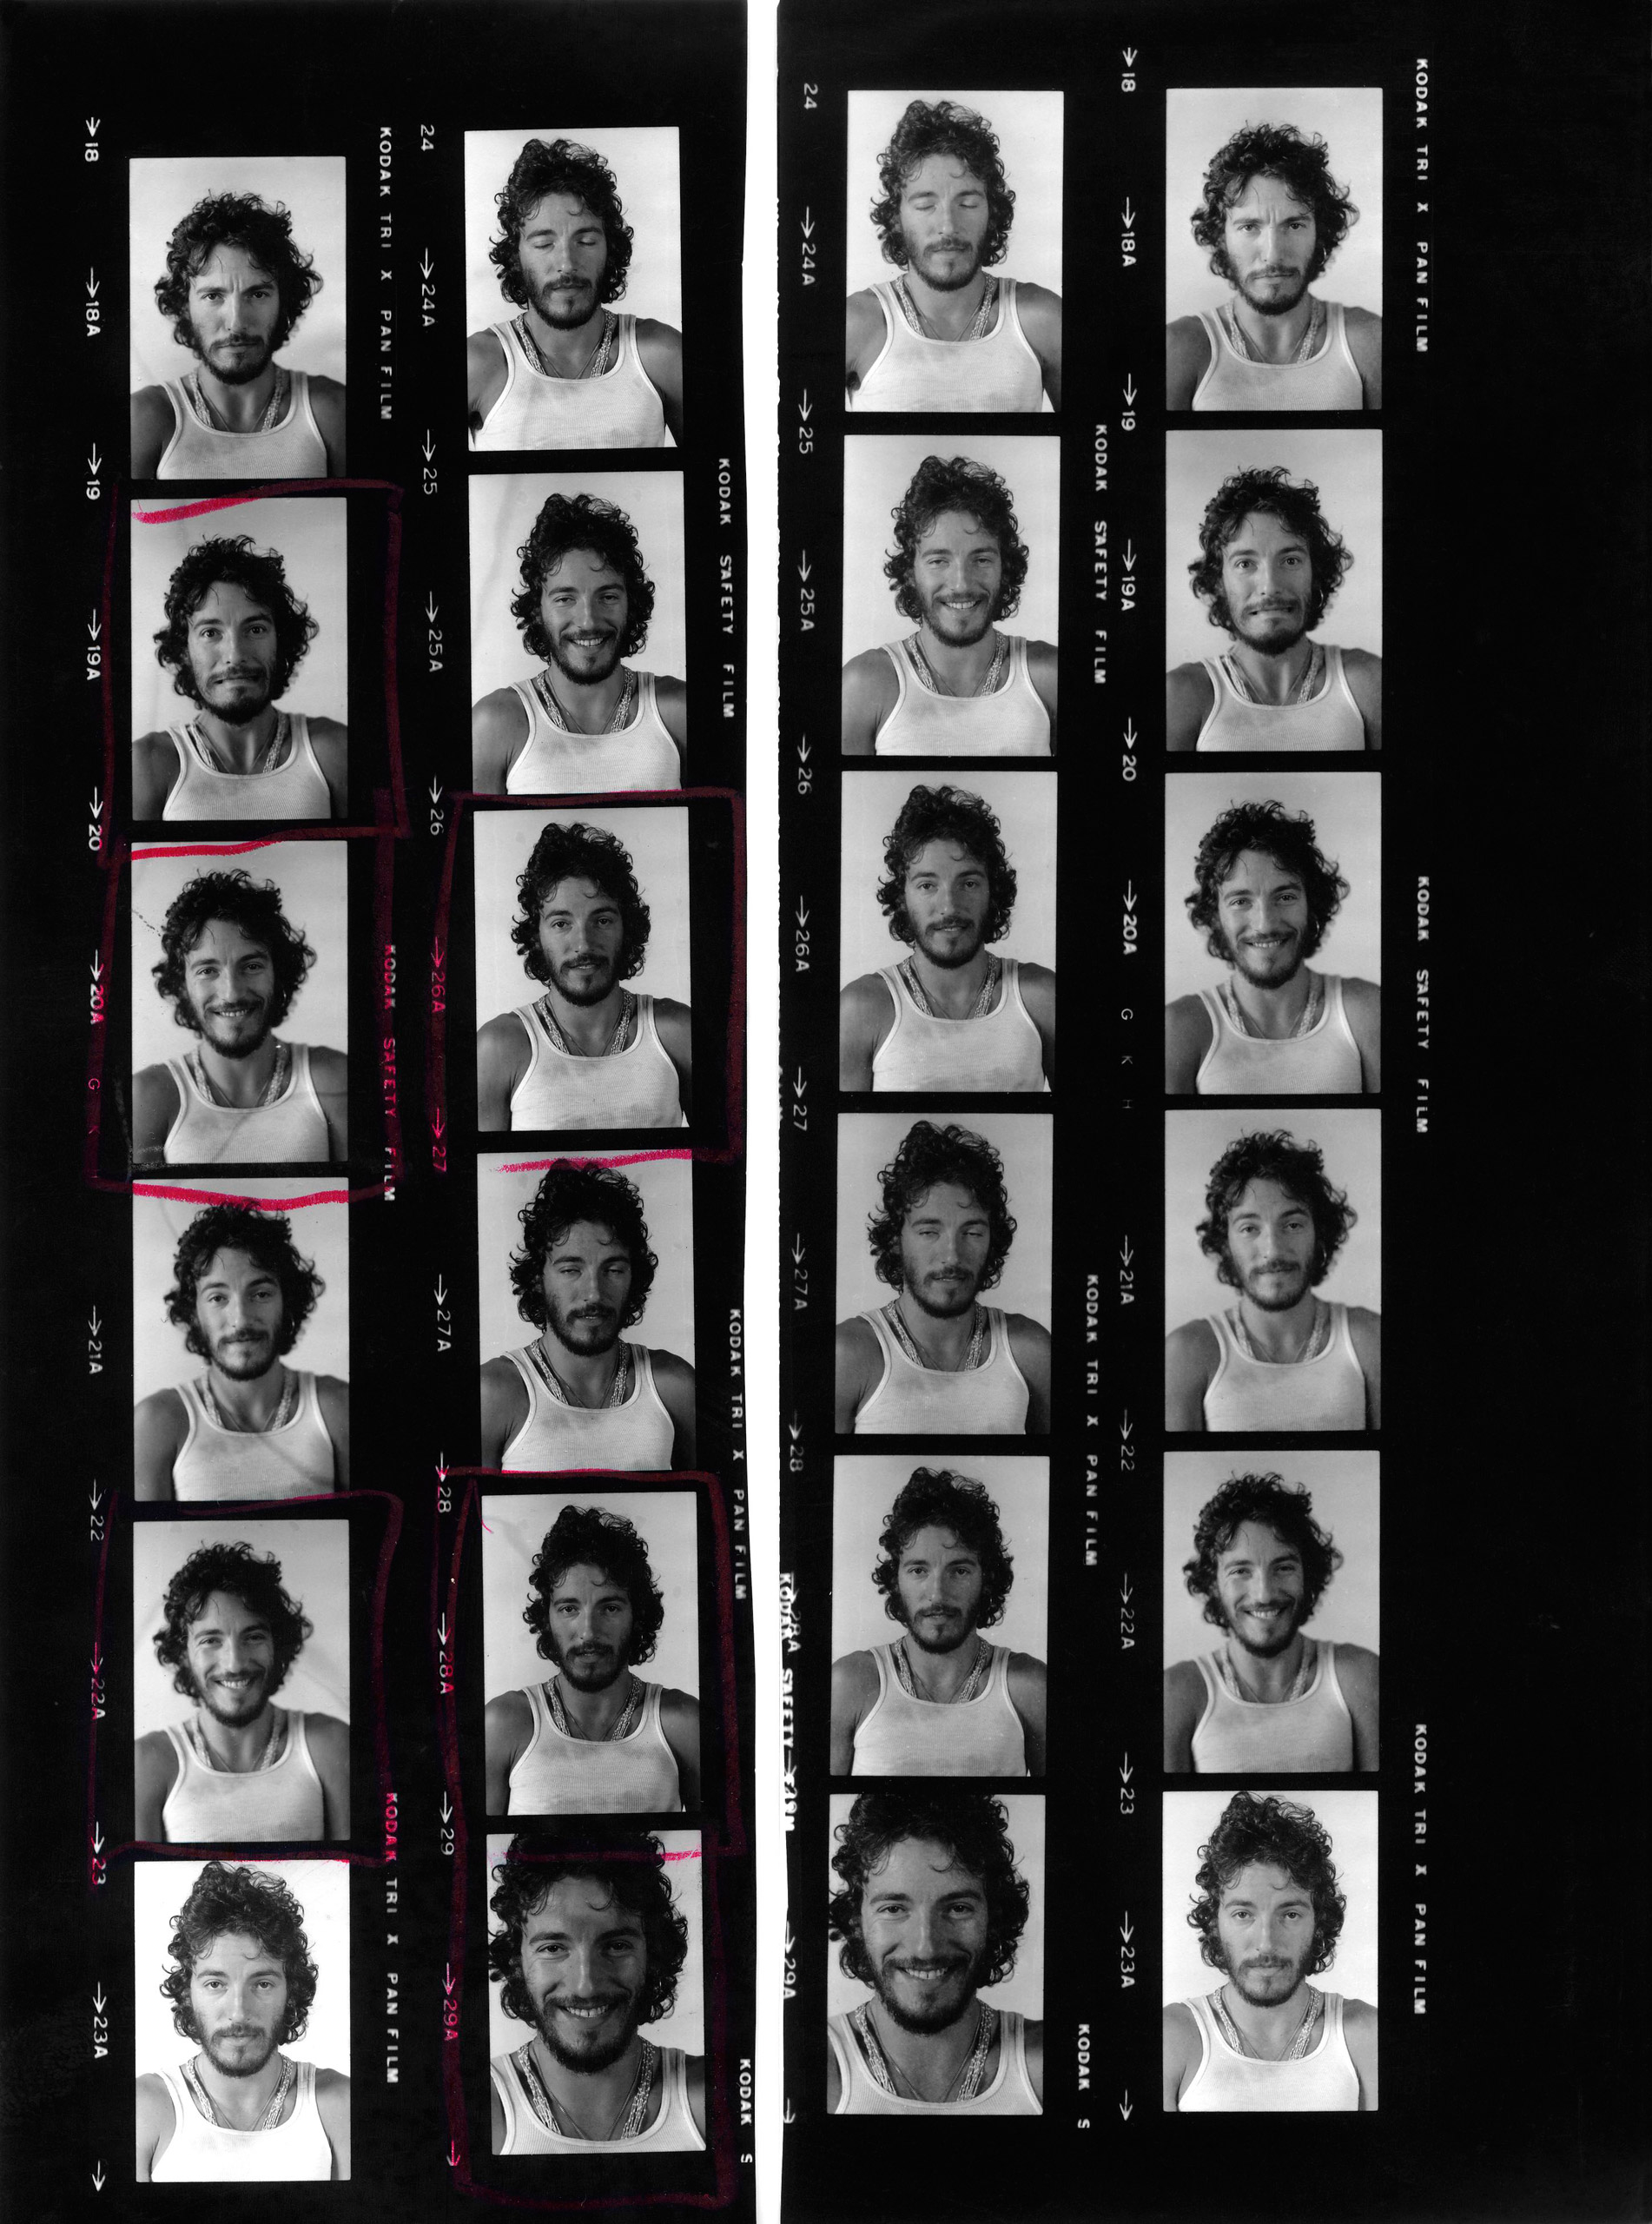 Passport photos Pyle took for Springsteen.